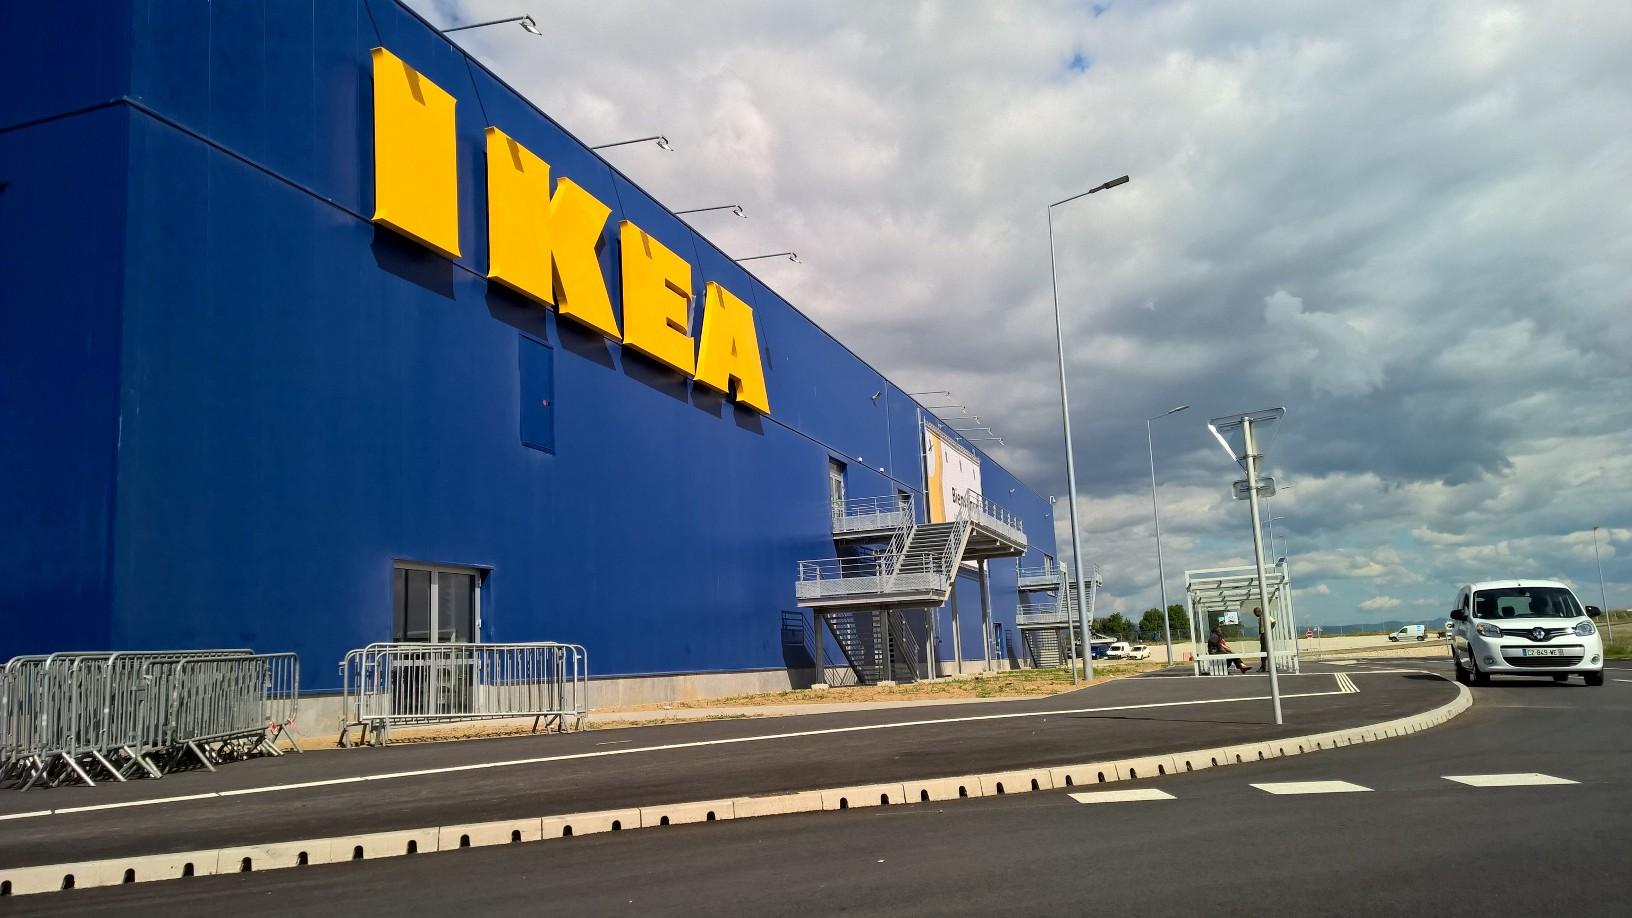 Luminaire Belfort Magasin Ikea Mulhouse Champagneandbeyond1